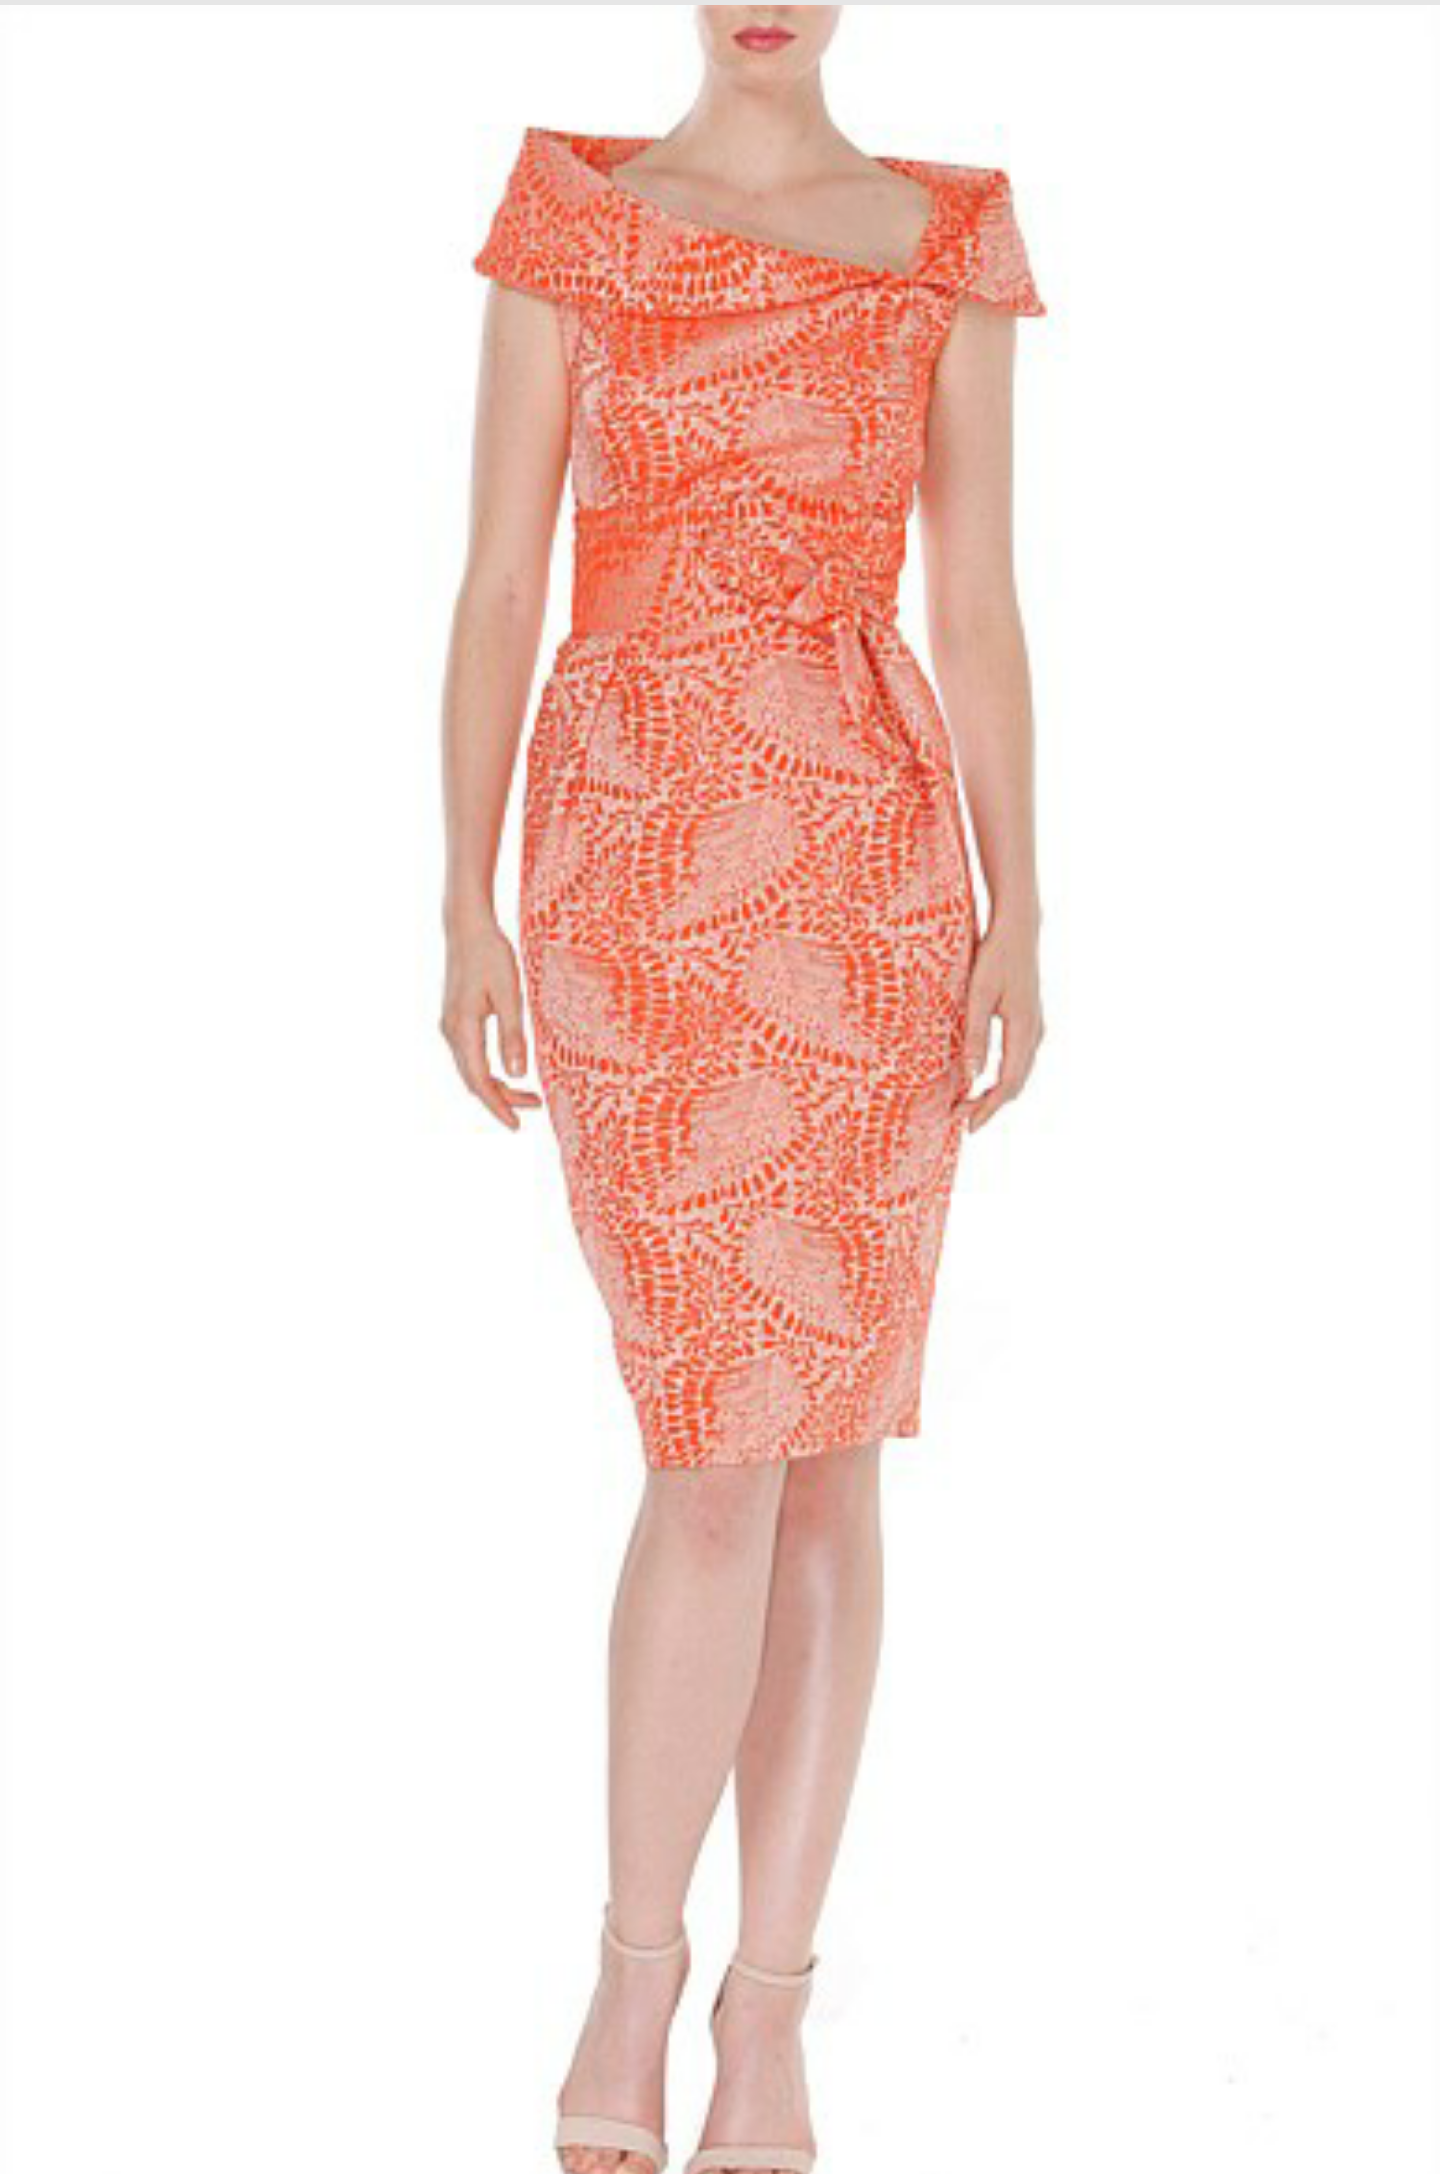 Tangerine Dress Available At Aspirations Race Day